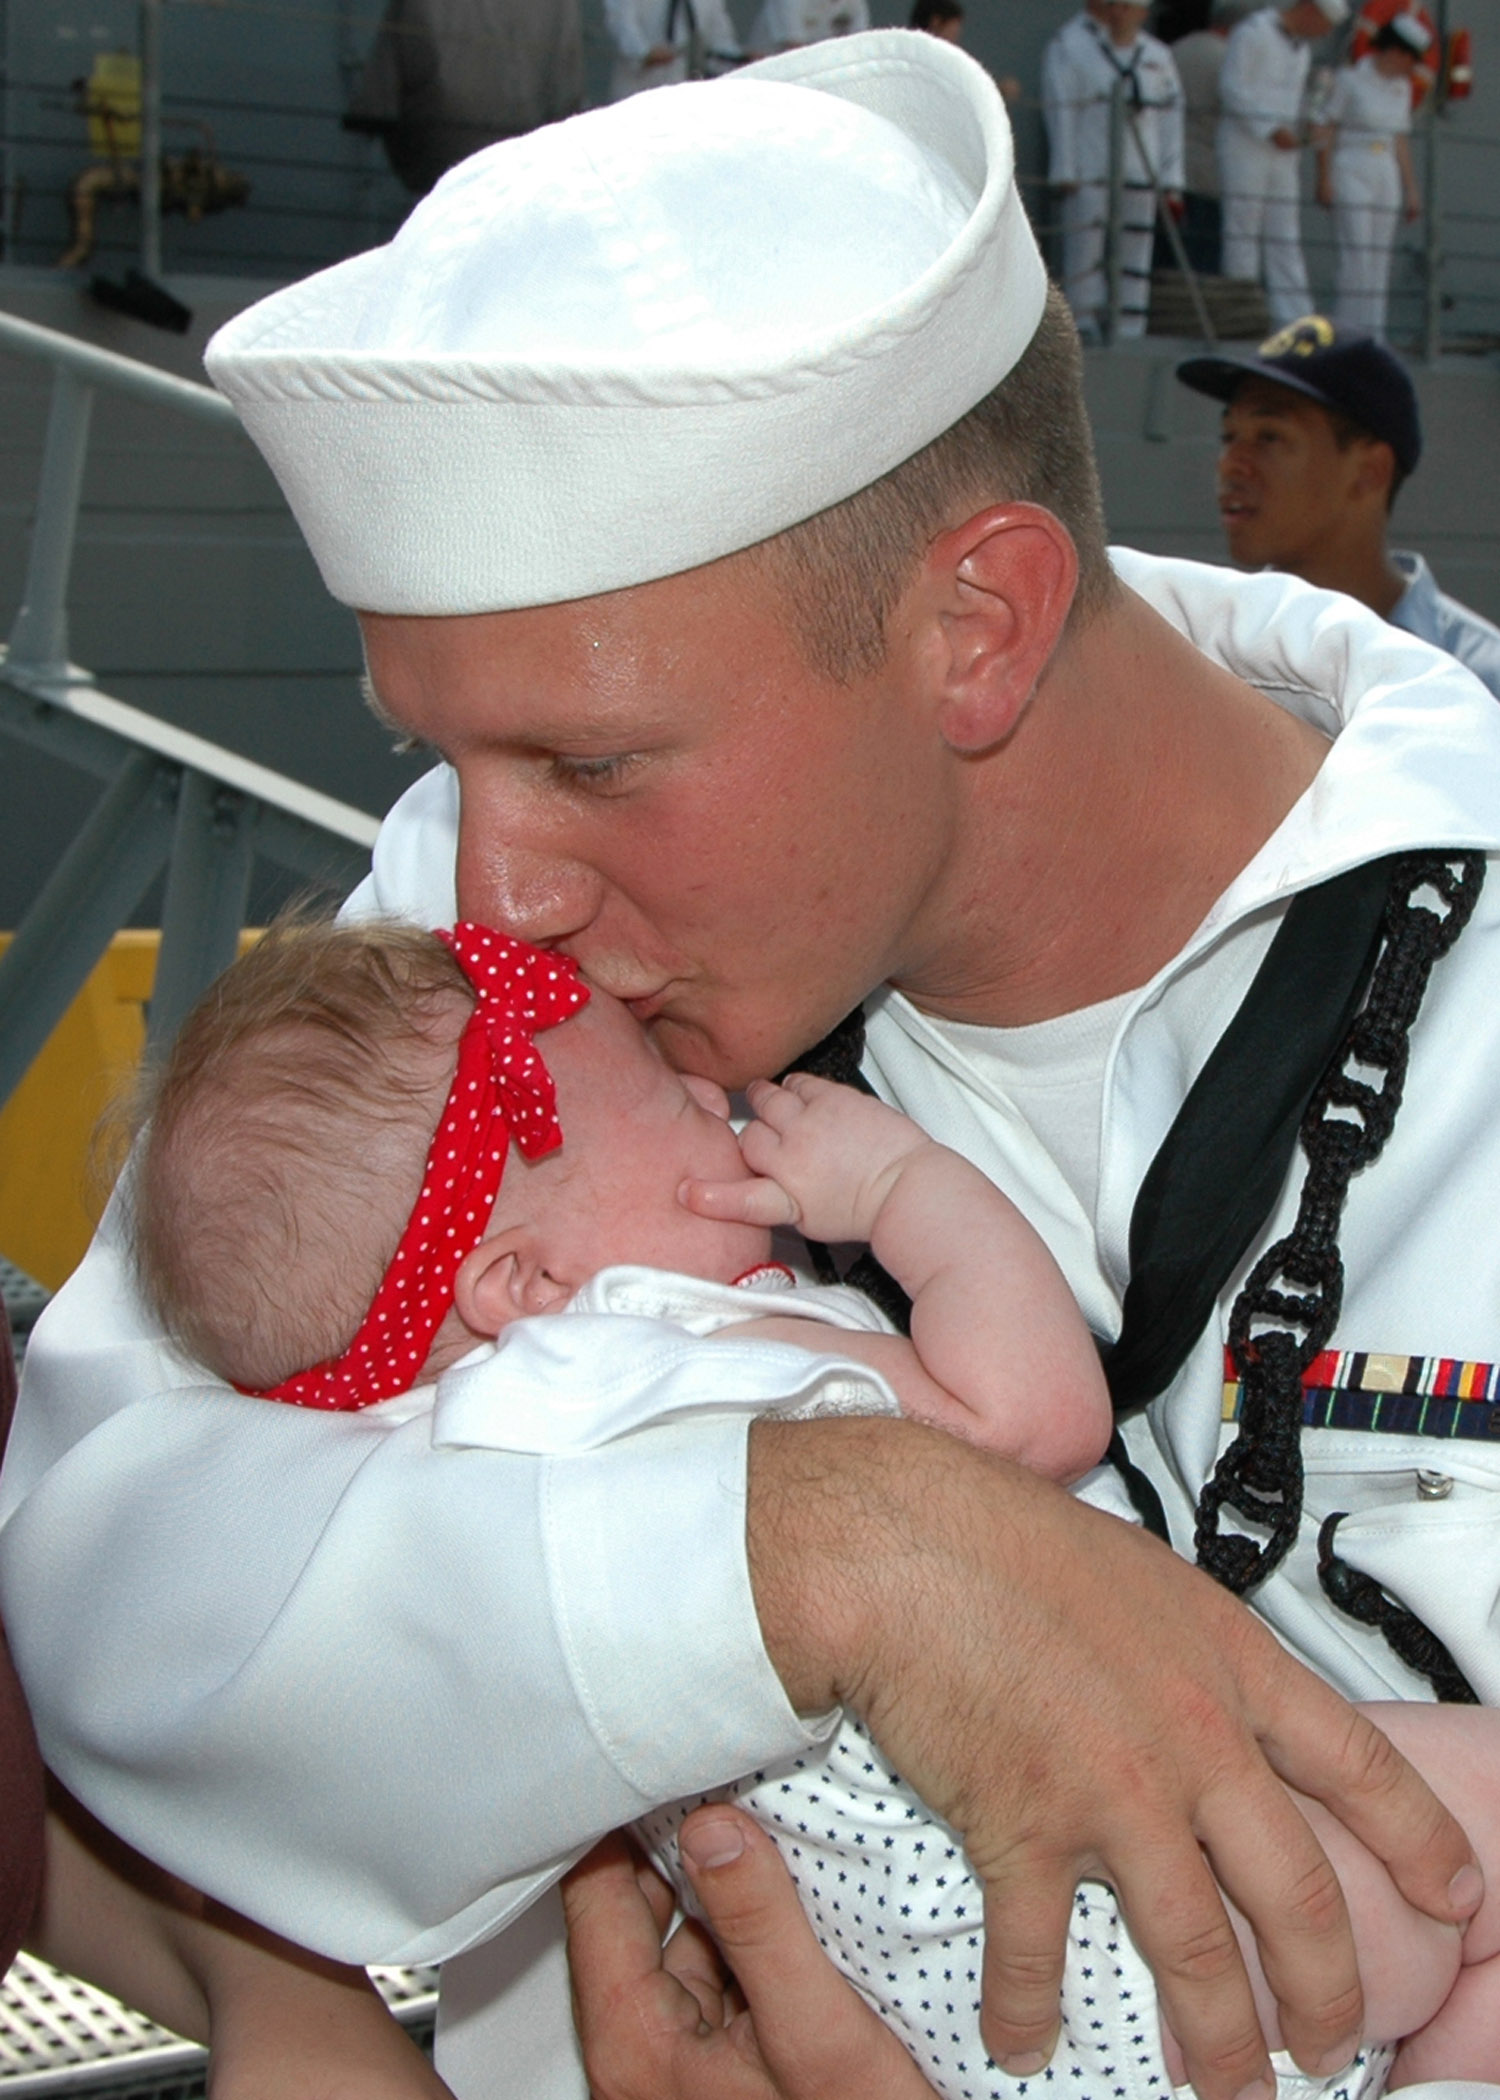 US Navy 070702-N-1522S-075 Boatswain's Mate 3rd Class Christopher Ball kisses his newborn baby, Chloe, for the first time during the homecoming of guided missile frigate USS Underwood (FFG-36)